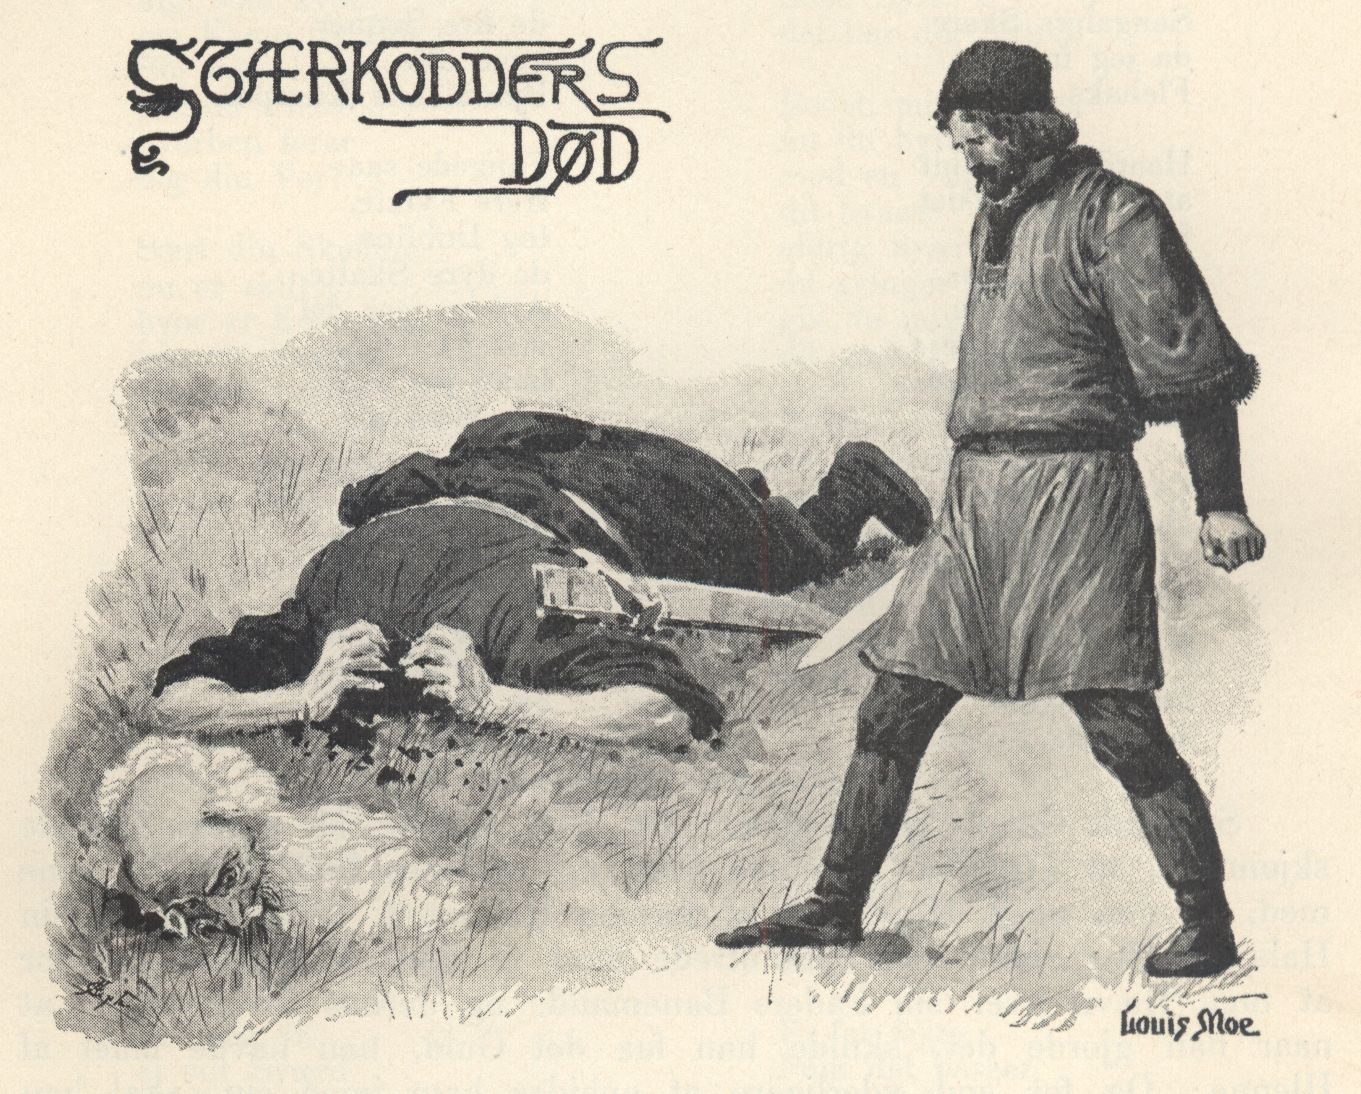 The Death of Starkaðr